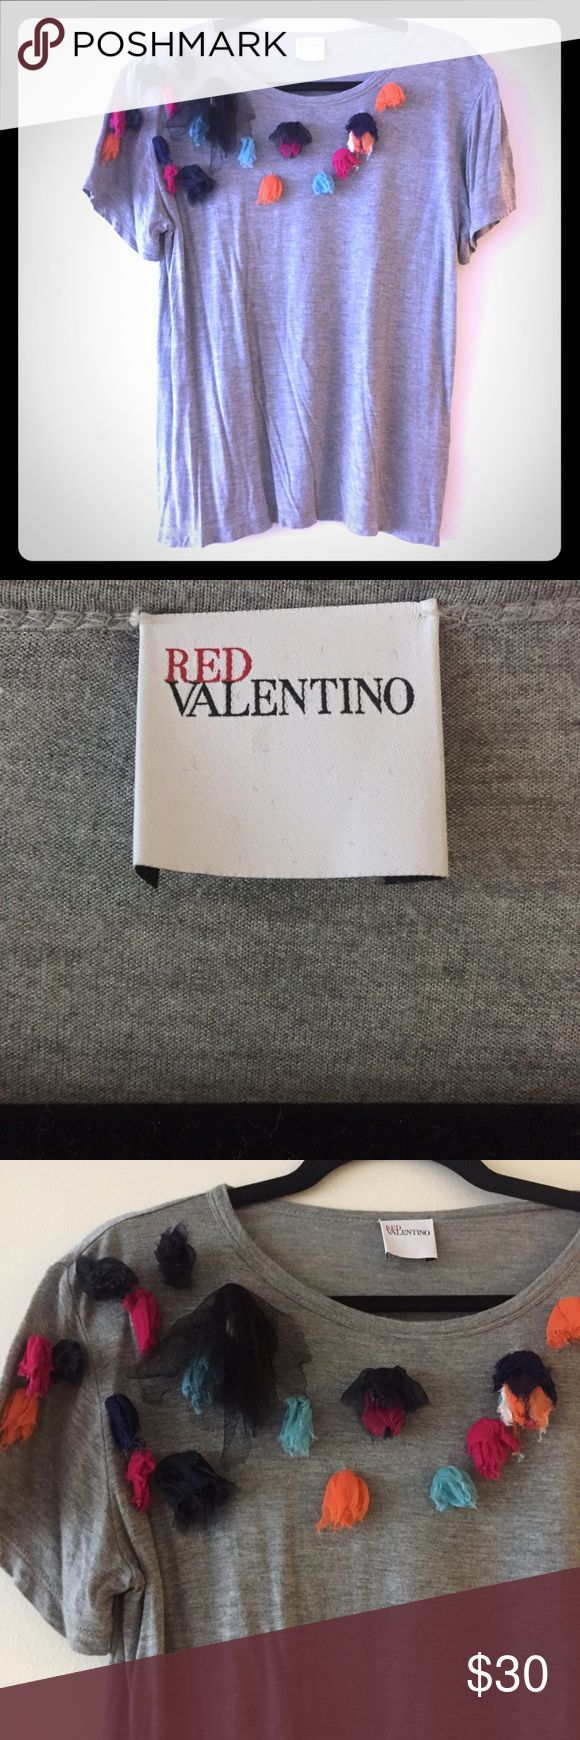 Red Valentino Shirt Red Valentino t-shirt with classic Valentino embellishments made of tulle. Hand washed and ready for you to wear! Re-posh I never got around to wearing. Small but not tight so could for a medium too. RED Valentino Tops Tees - Short Sleeve